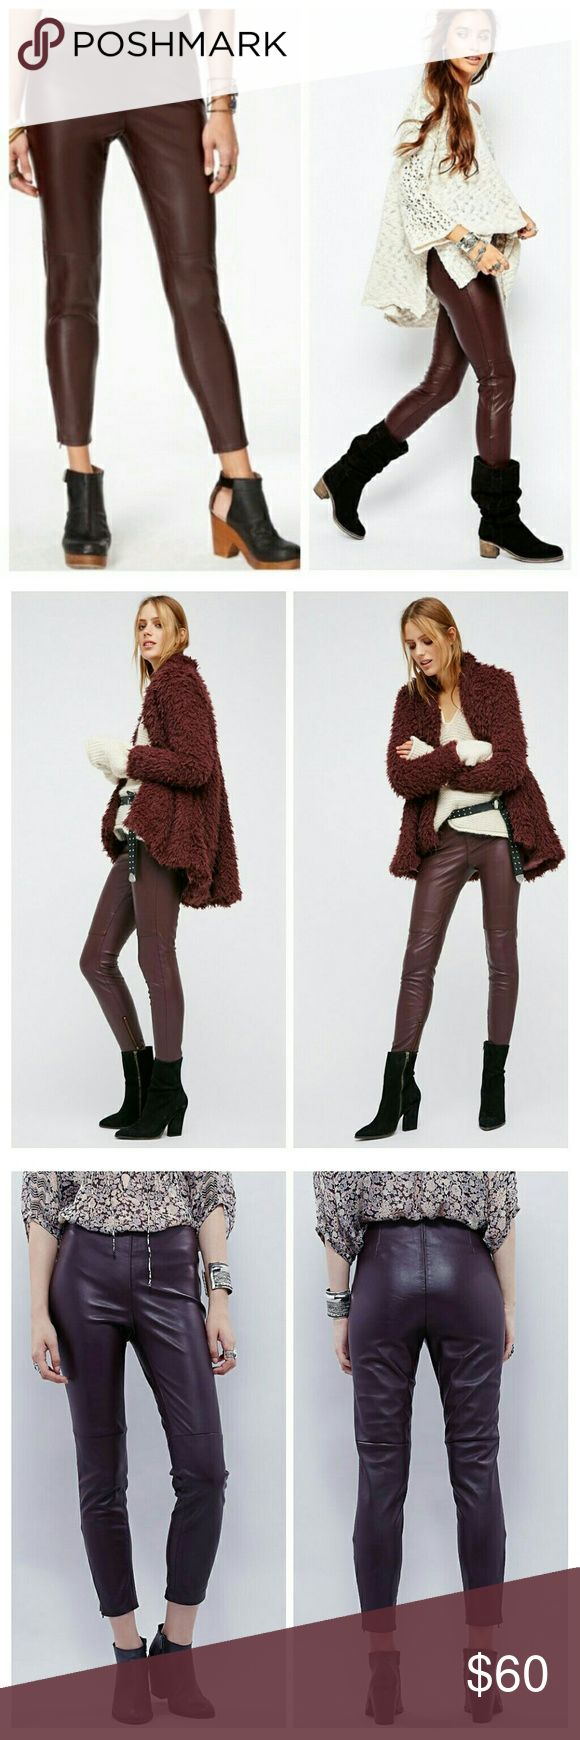 NWT FREE PEOPLE Vegan Leggings  in Oxblood The simple fact that they are vegan leather leggings alone automatically will make anyone feel like a rock star! This edgy  leggings from Free People lend a slimming fit ,will also offering a pop of color to your look that will make you stand out from the crowd in the best way possible! Ankle zippers on the side, side hip zip,elastic  waist band. 100% polyurethane, machine wash cold. Free People Pants Leggings